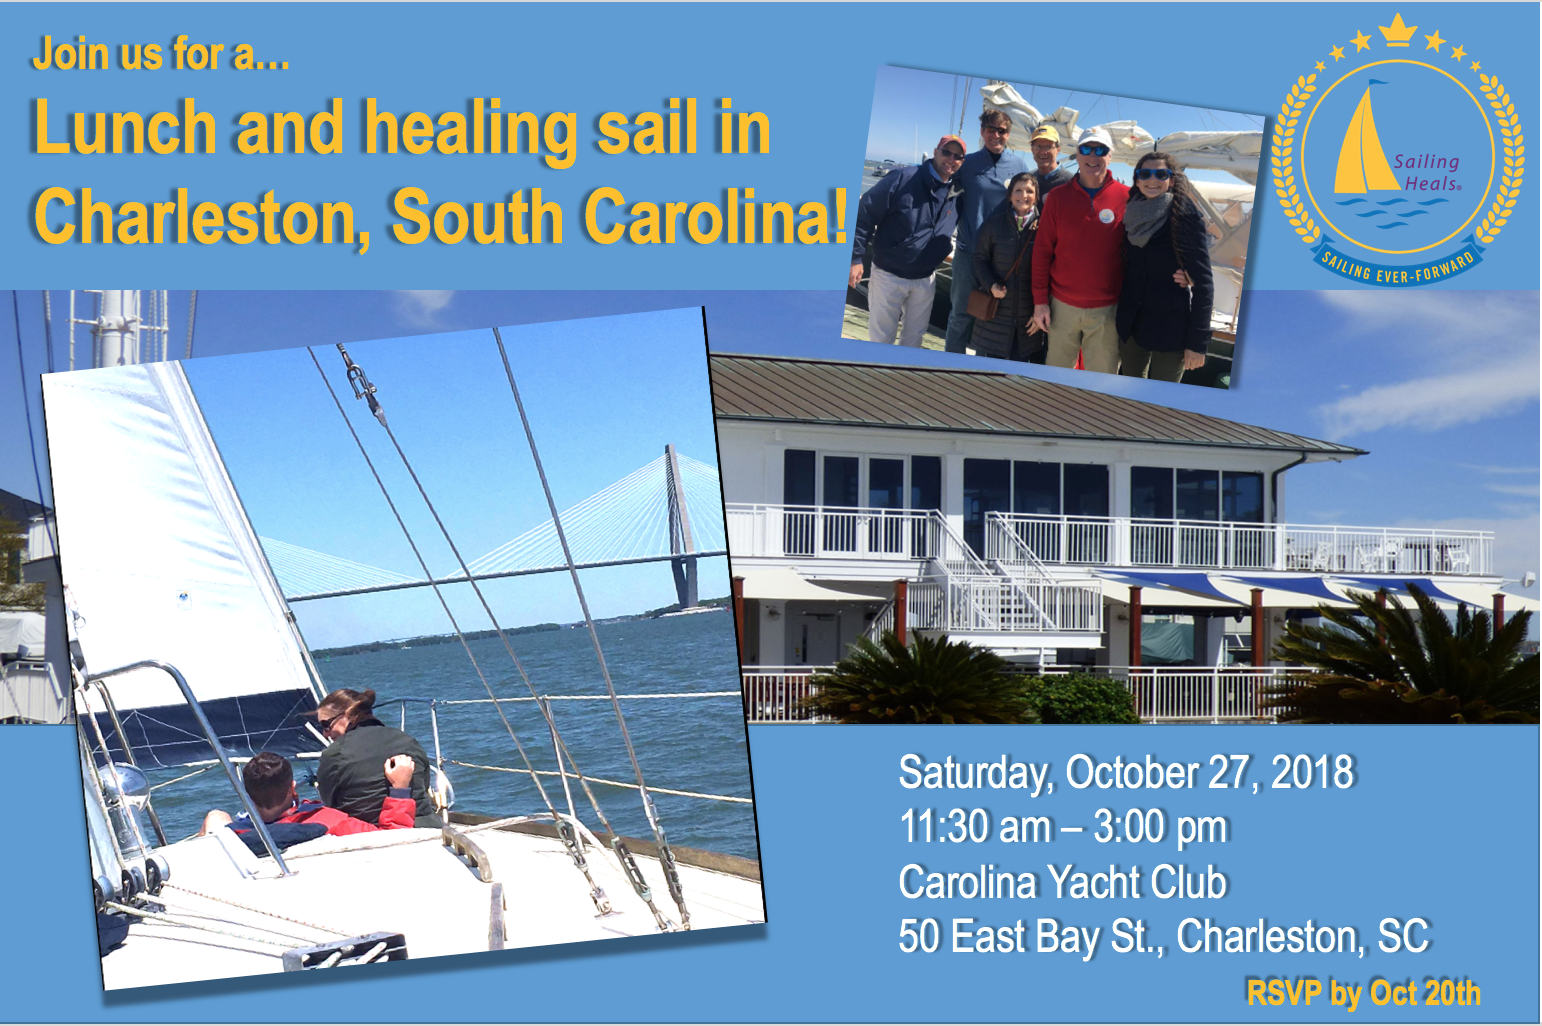 10/27/18 Carolina Yacht Club healing sail